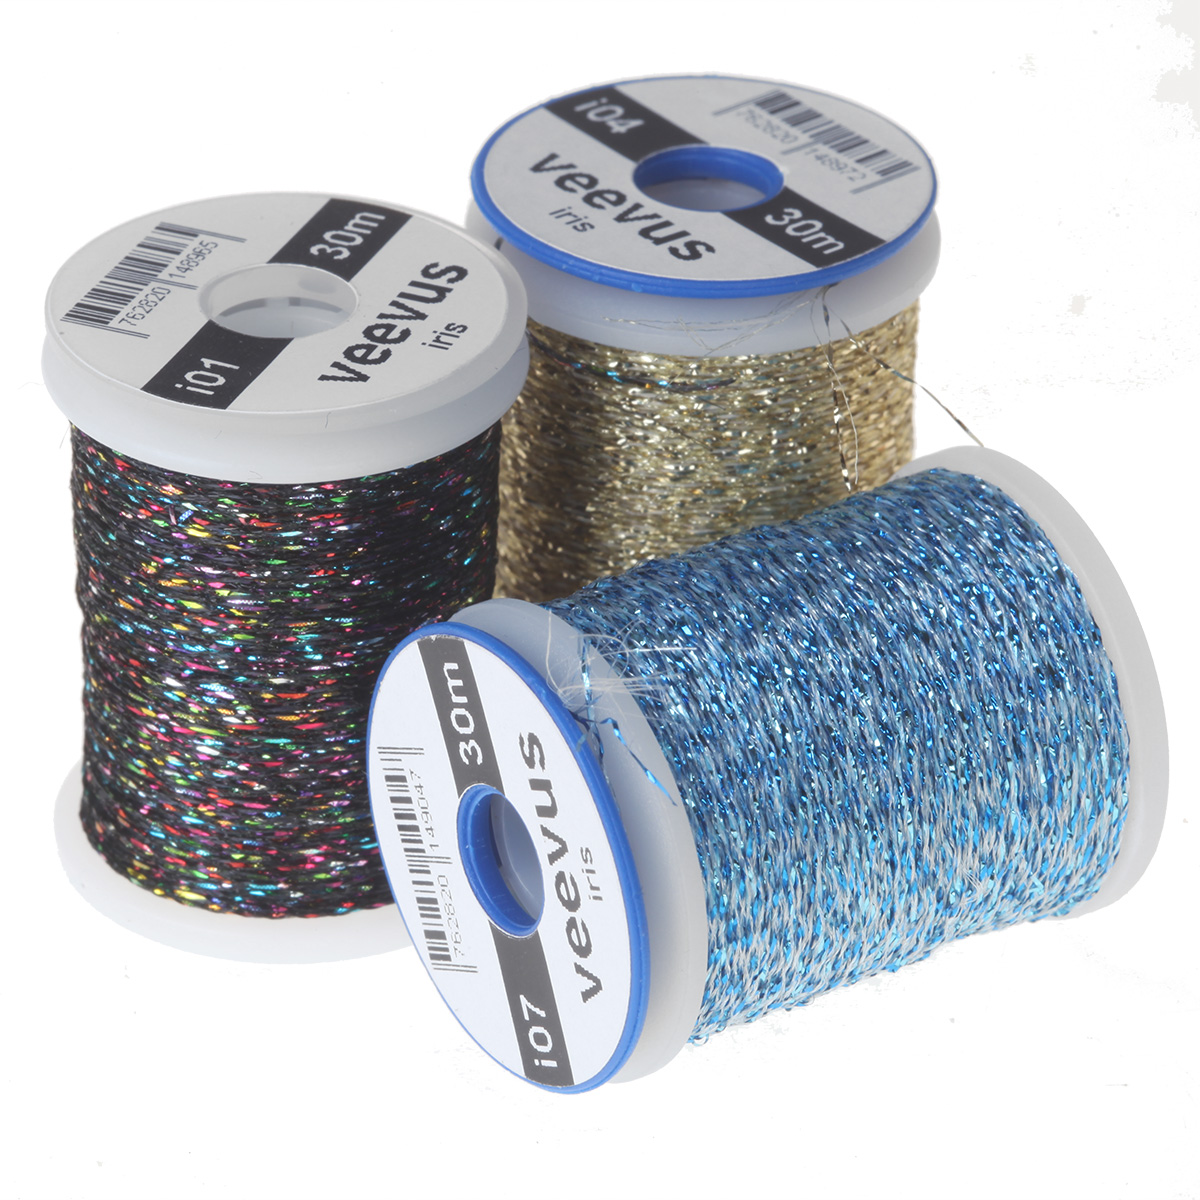 Veevus Iridescent Thread, Fly Tying Tinsels, Wires - Taimen